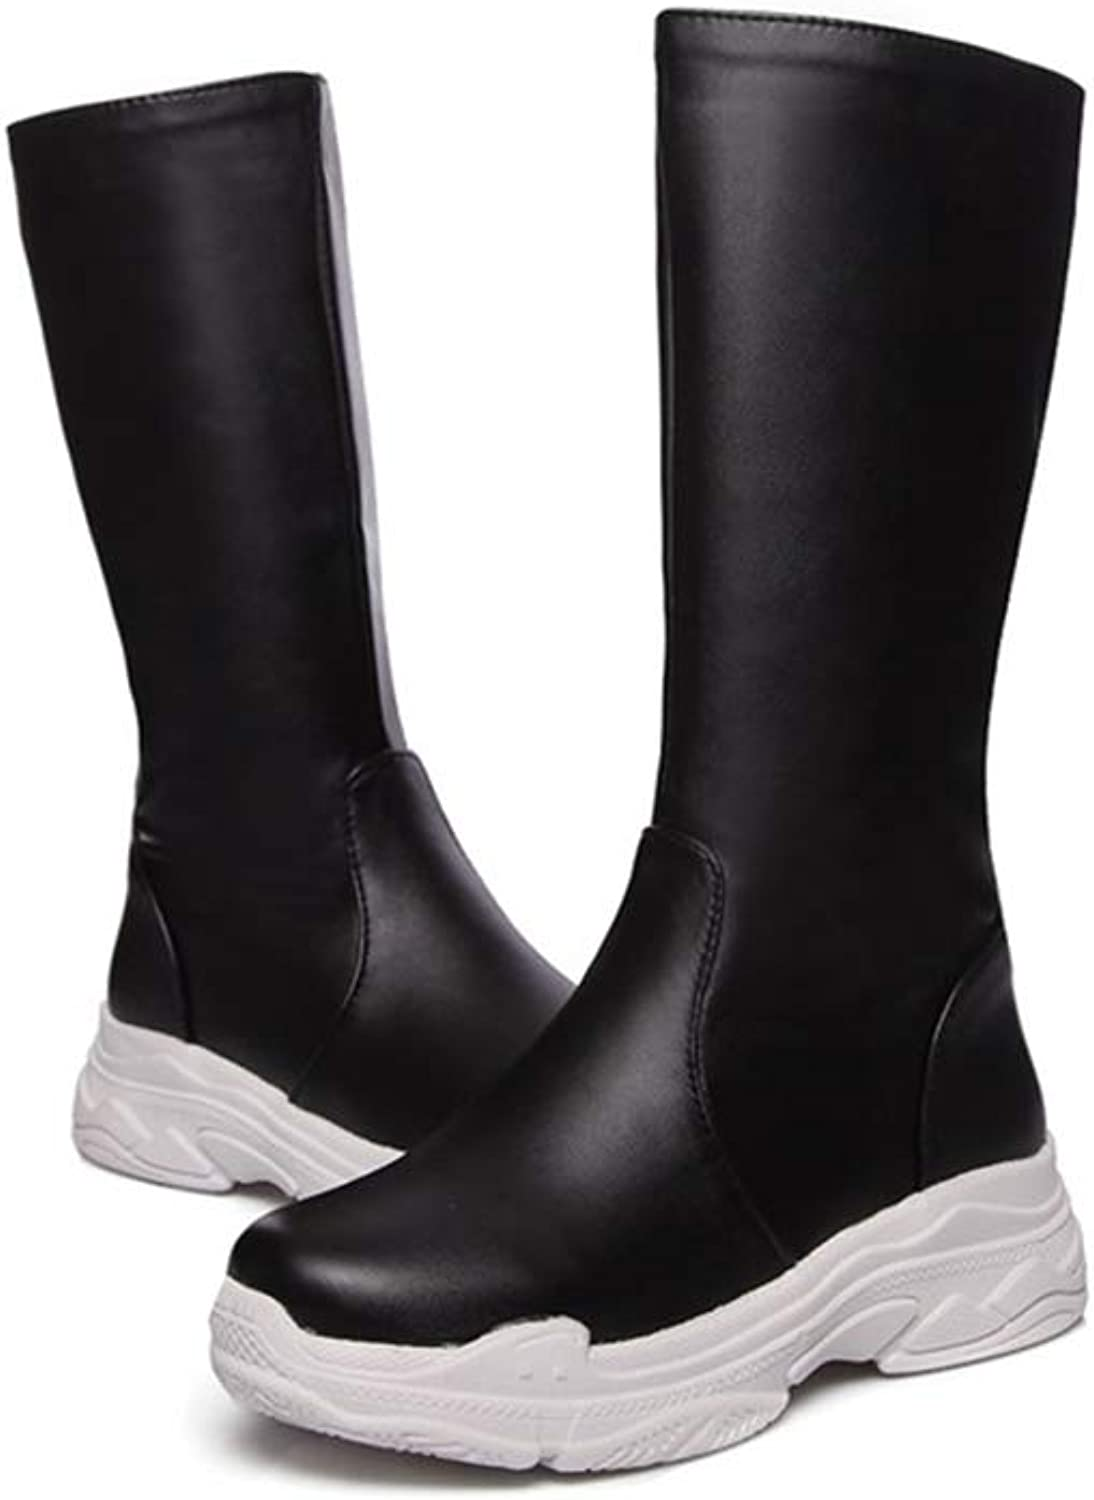 T-JULY New Leisure College Style Med Wedges Platform Slip-On White and Black Large Size Winter Mid Calf Boots